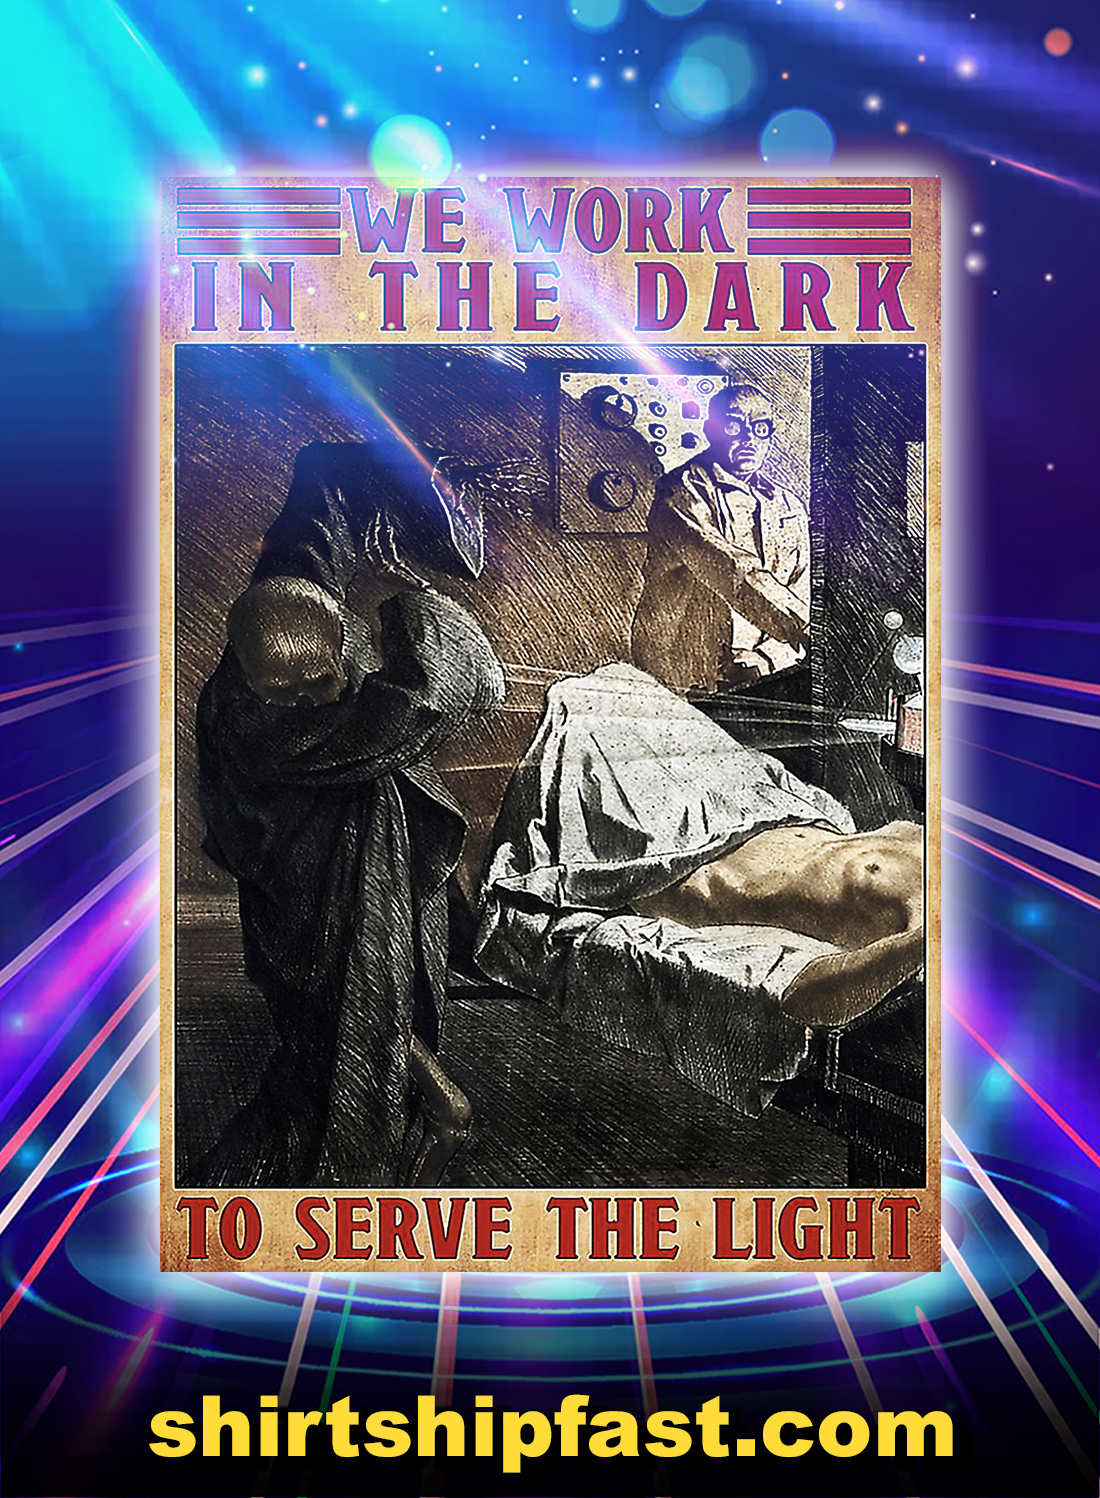 Radiologist we work in the dark to serve the light poster - A4